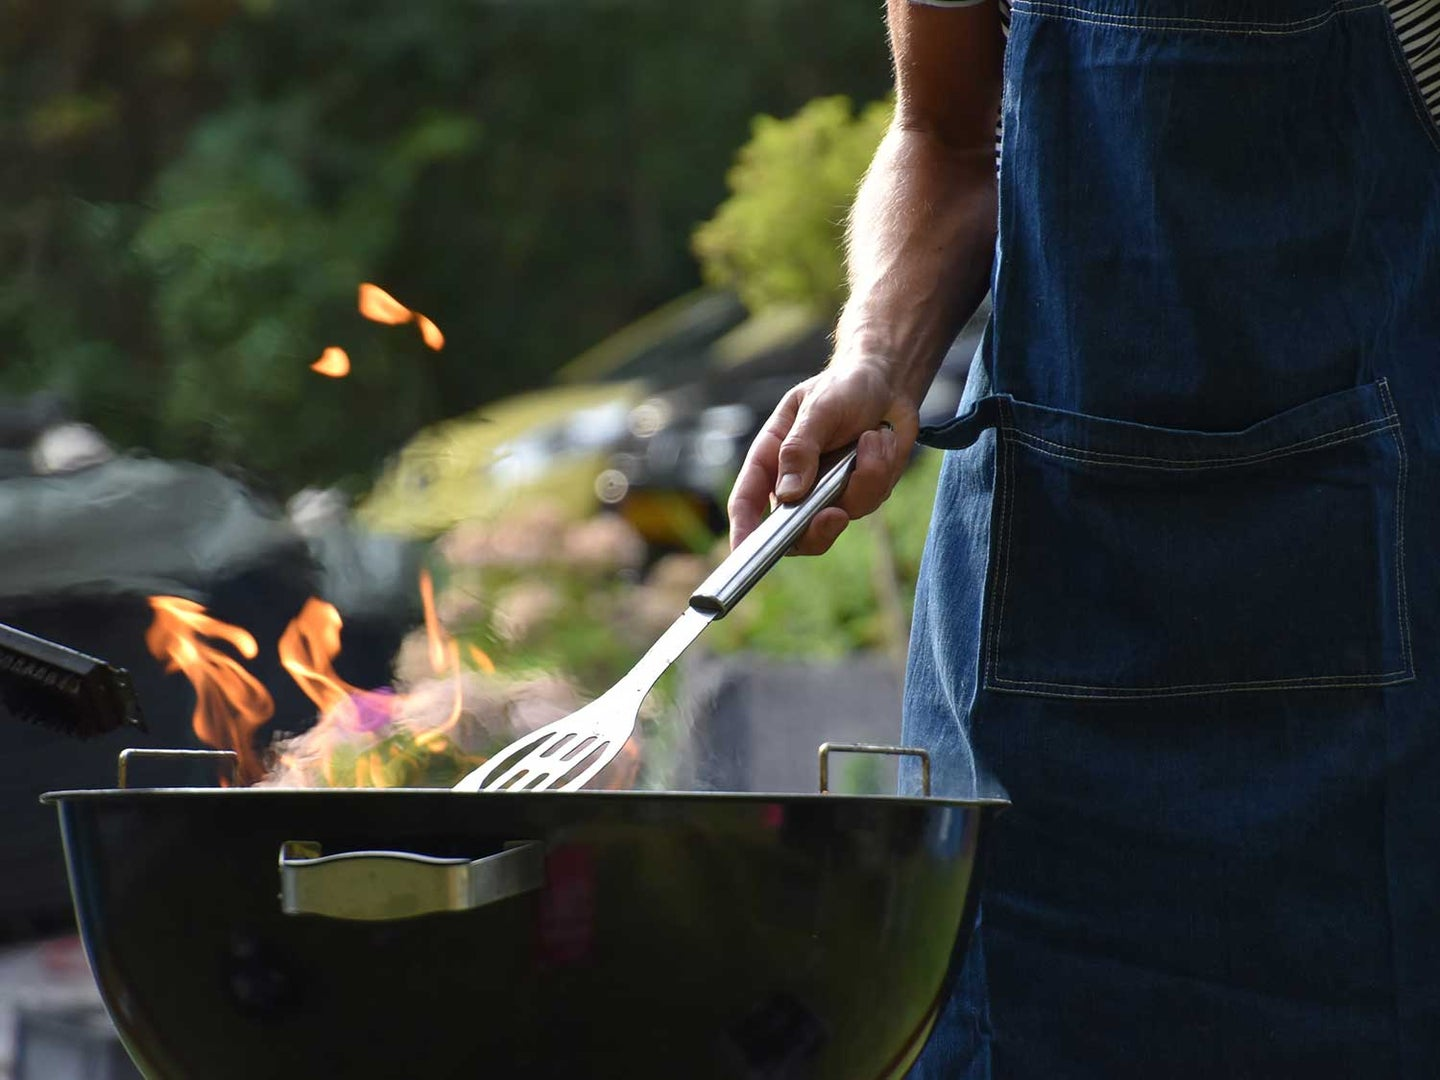 Man grilling on charcoal grill.